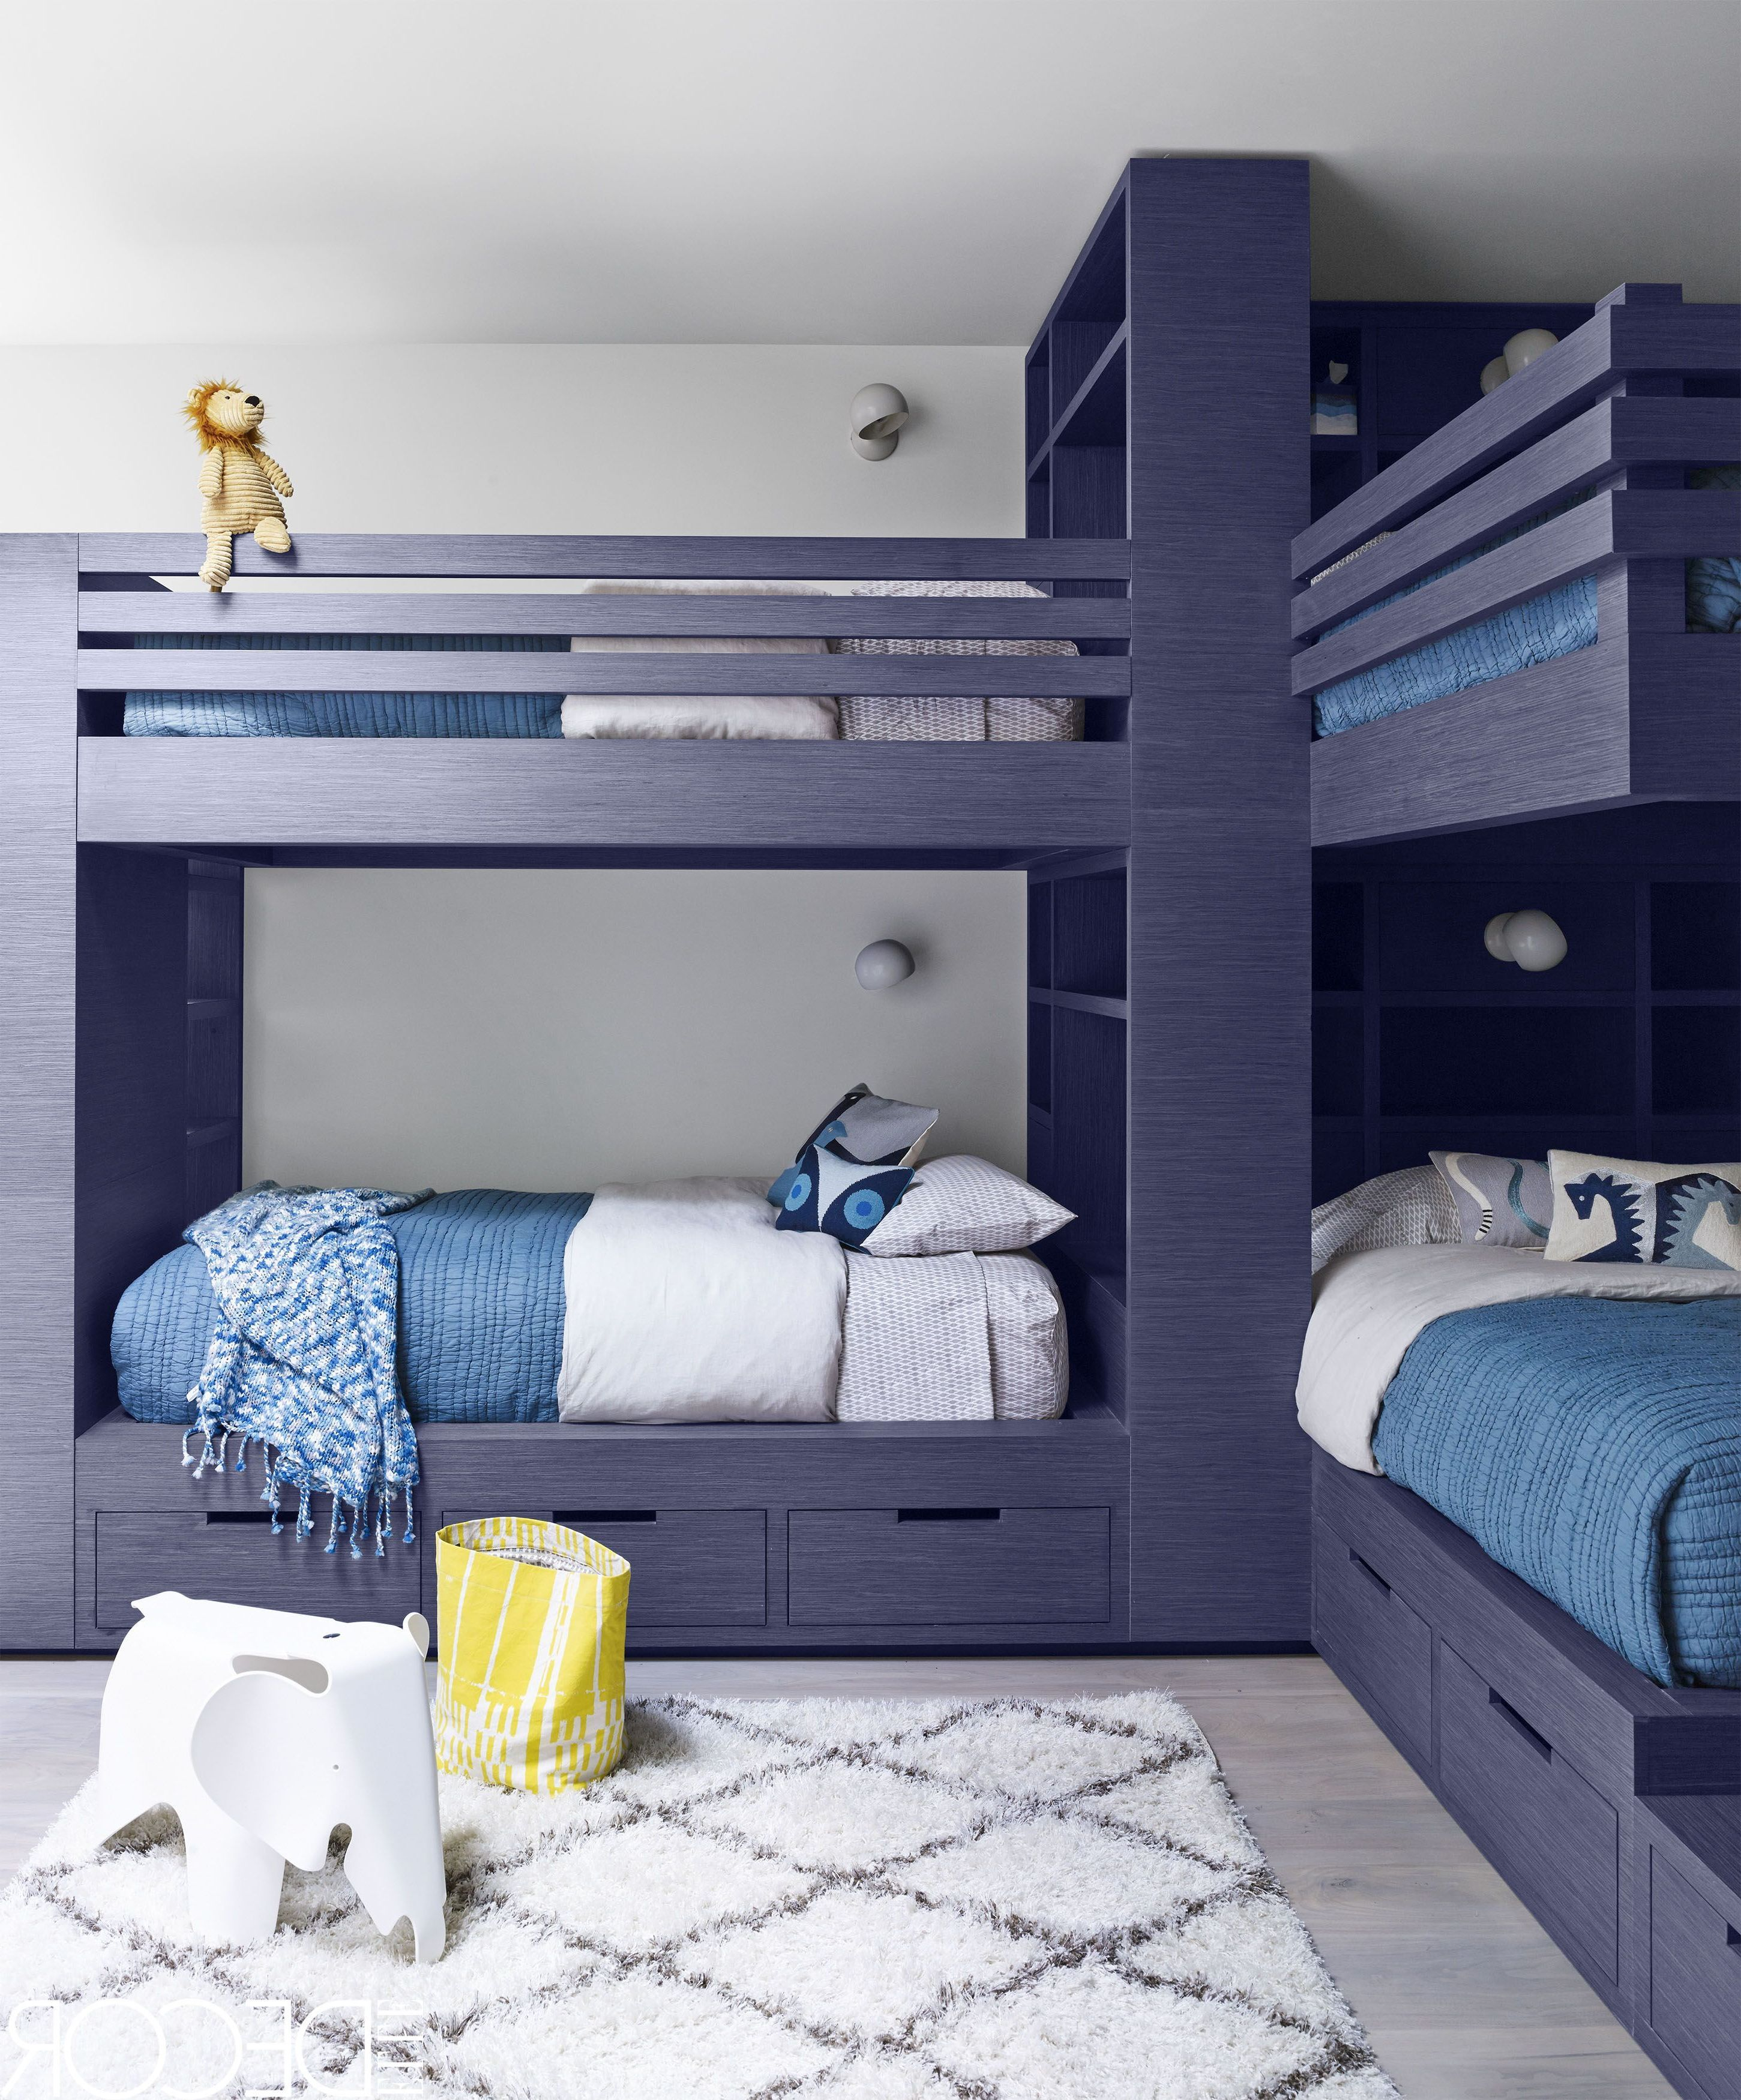 14 Tips For Choosing Furniture For Children S Rooms Plus Photos Decor Around The World Boy Bedroom Design Boys Room Colors Bedroom Design Choosing kids bedroom furniture